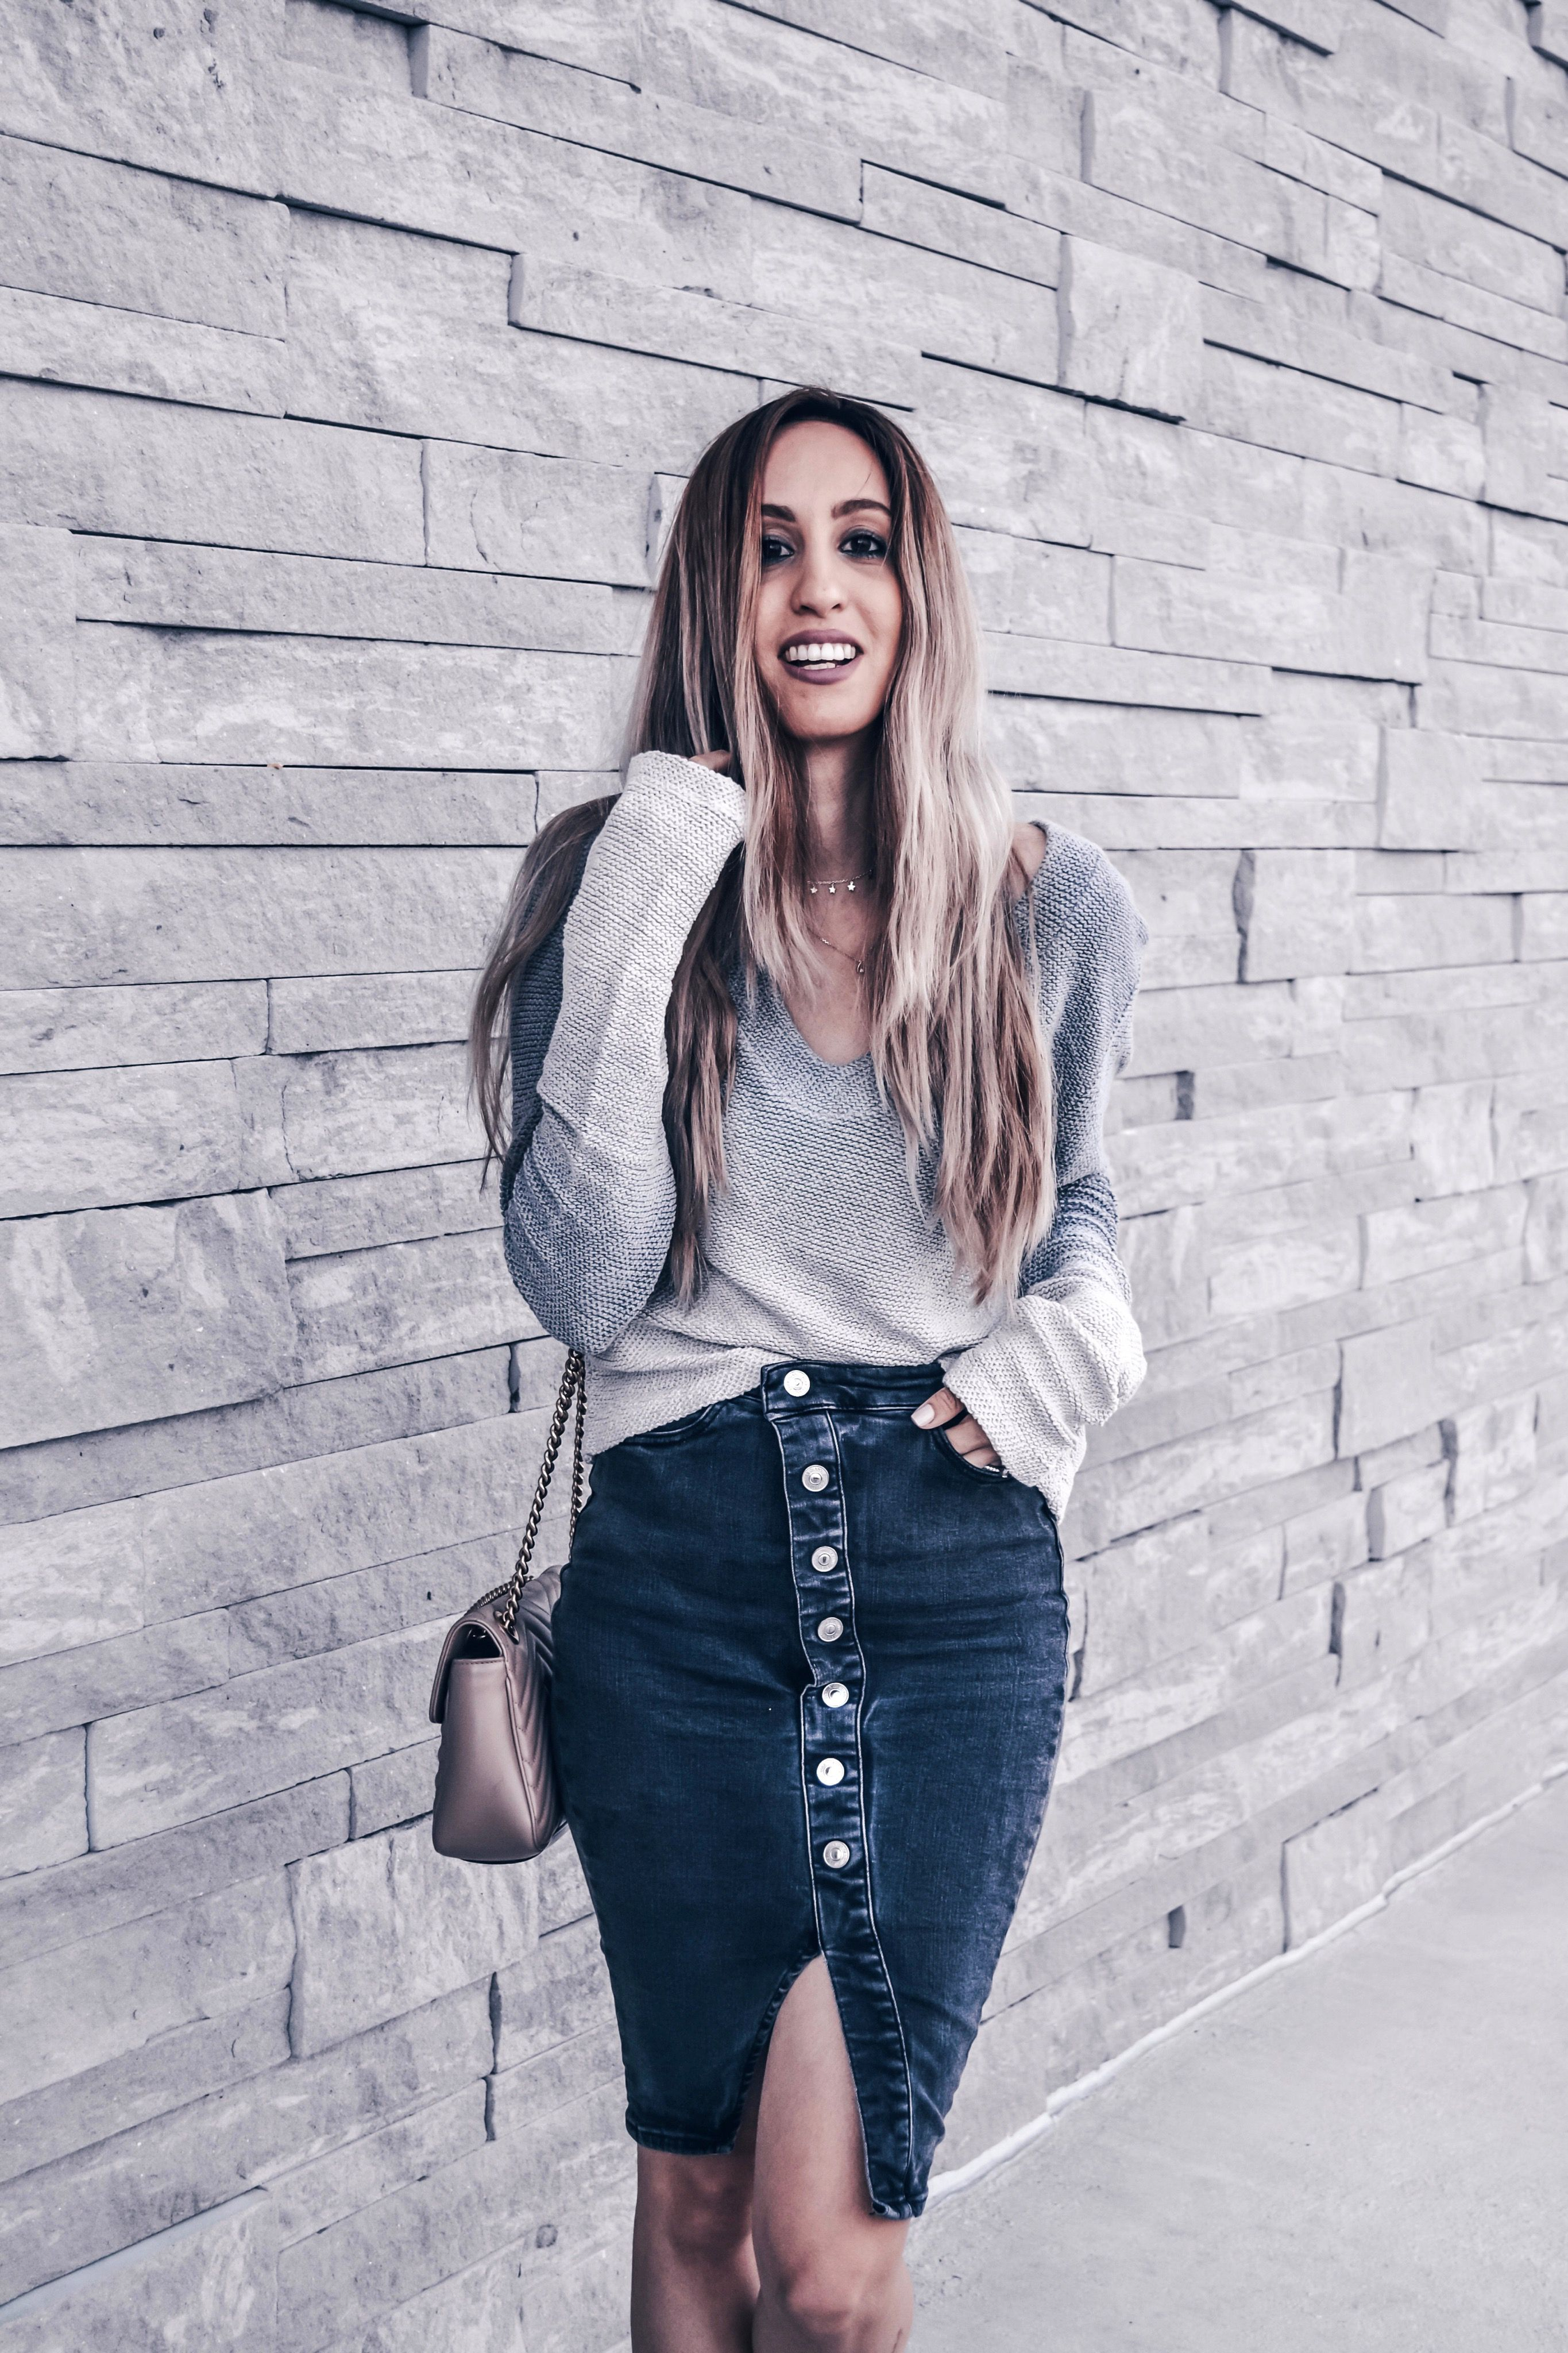 Love sweaters and knits paired with denim skirts! Black